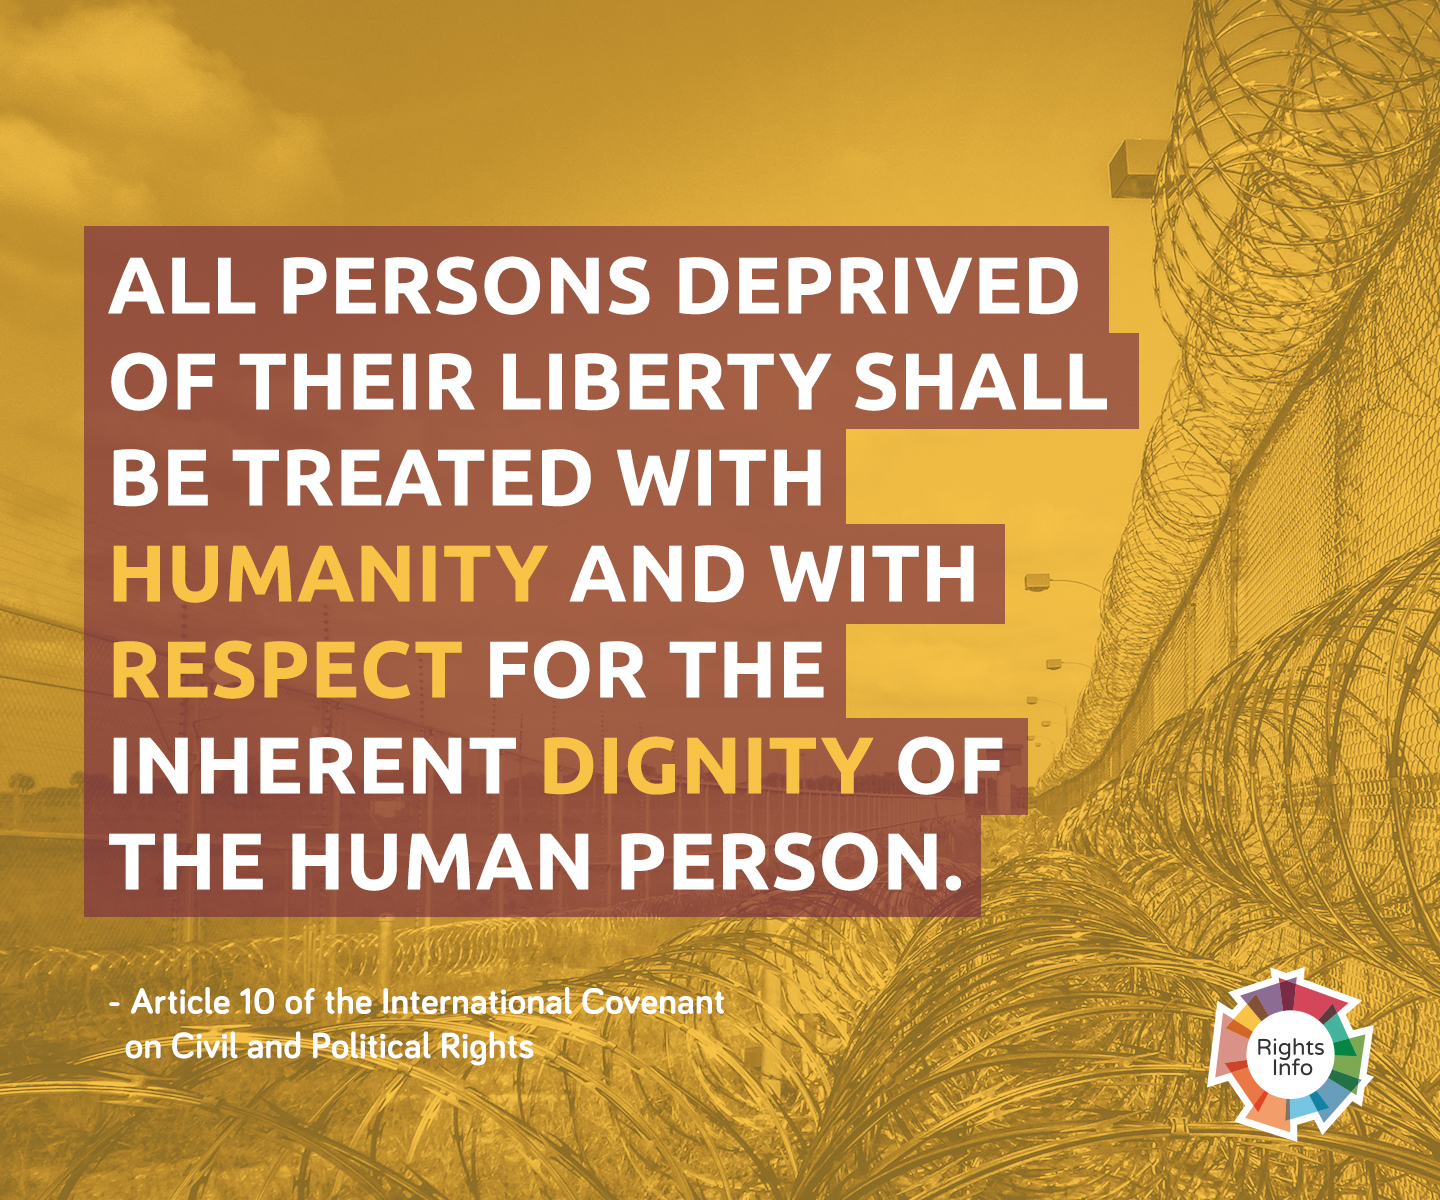 Article 10 of the International Covenant